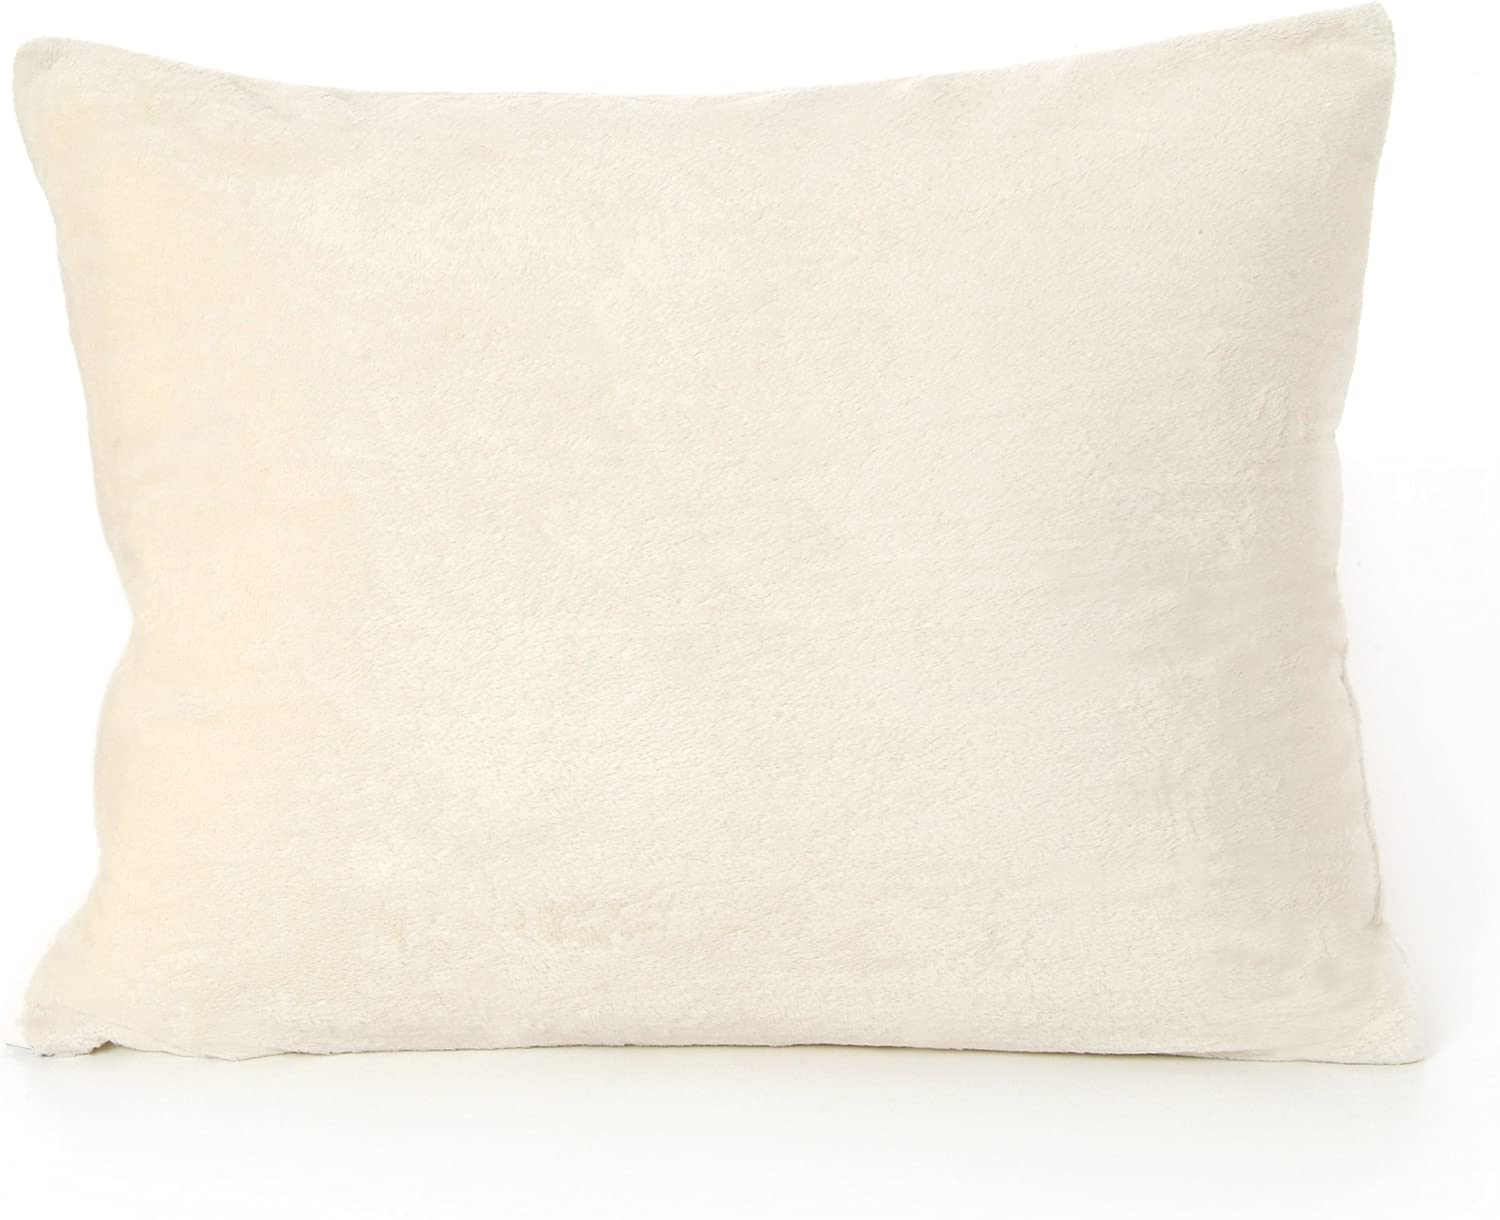 "My First Pillow Memory Foam Youth PIllow, 1'8"" x 1'4"" x 3"", Cream"